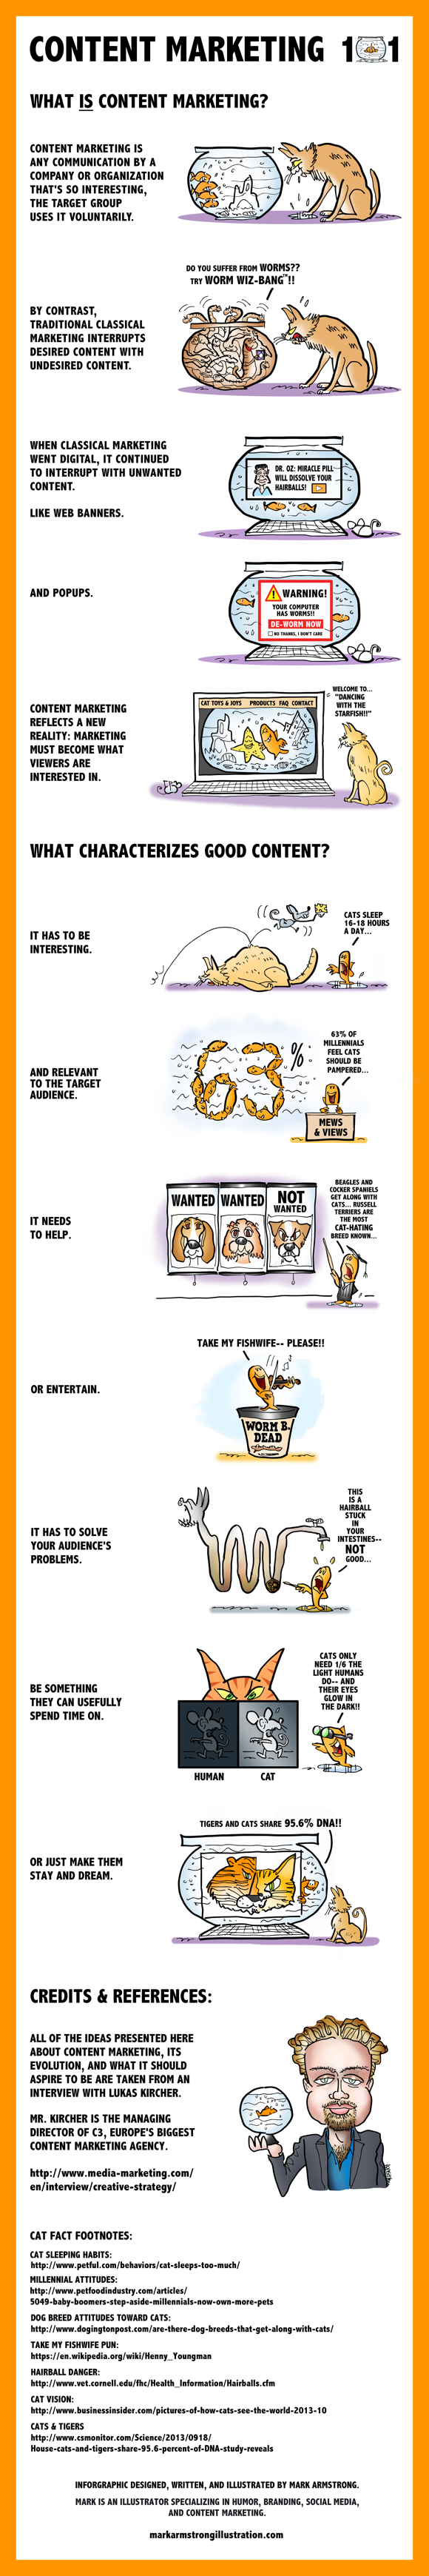 infographic which explains content marketing how it differs from traditional marketing characteristics of good content cat facts based on interview with Lukas Kircher managing director C3